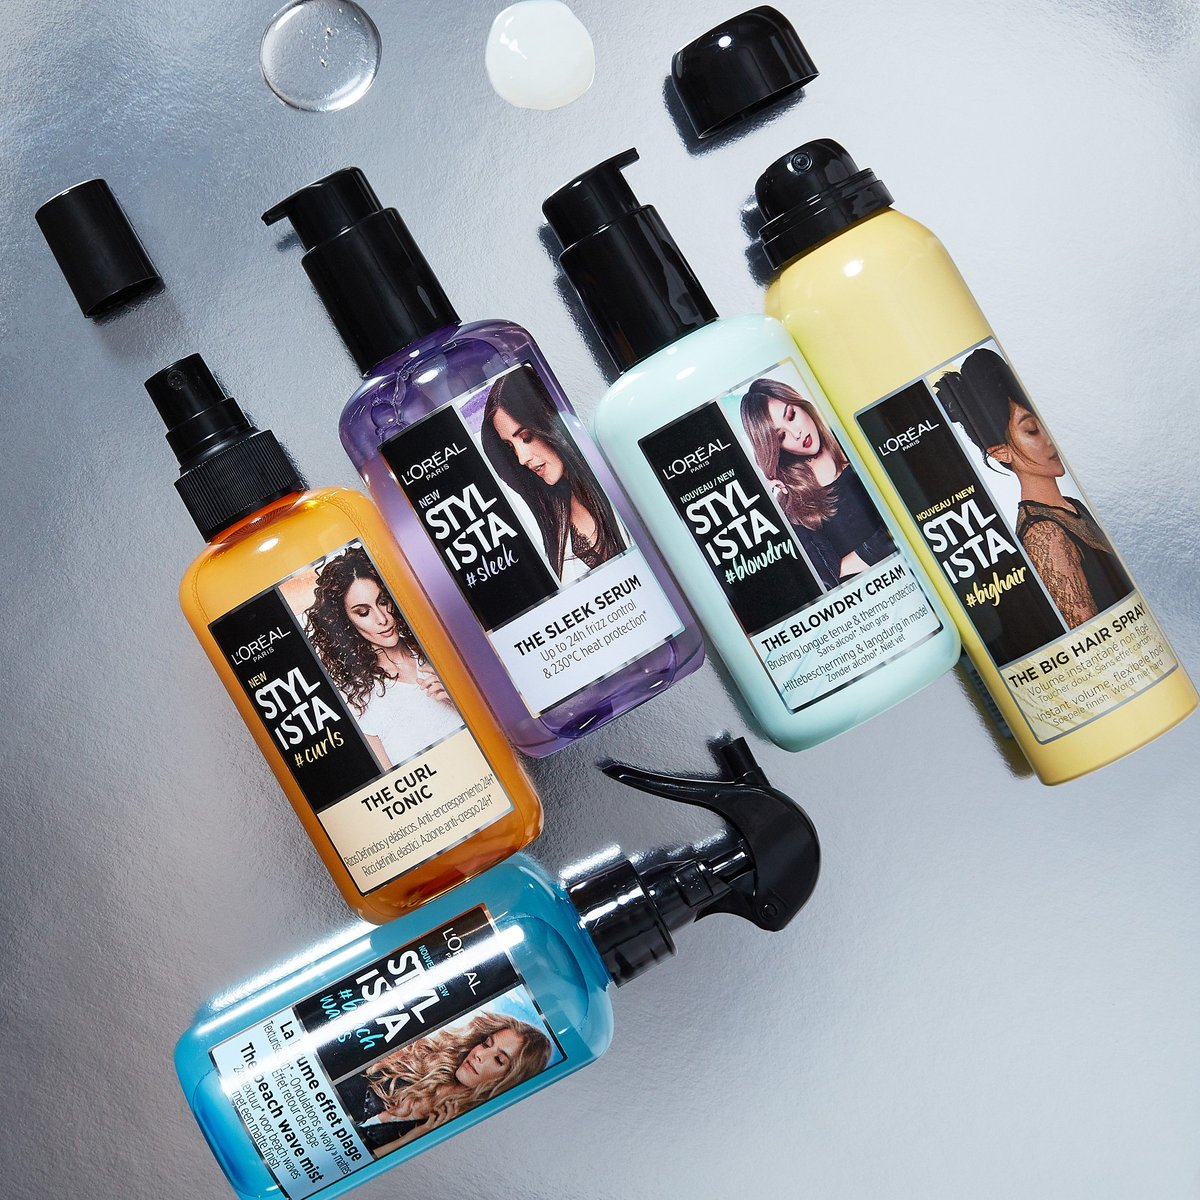 Style your hair your way with the Stylista range from @LOrealParisUK 💁♀️🙌 Whether you want a blowdry or beachwaves, they've got your hair needs covered 😍 Shop now: https://t.co/2HcSwW0uHe https://t.co/SKnW0pAGKB